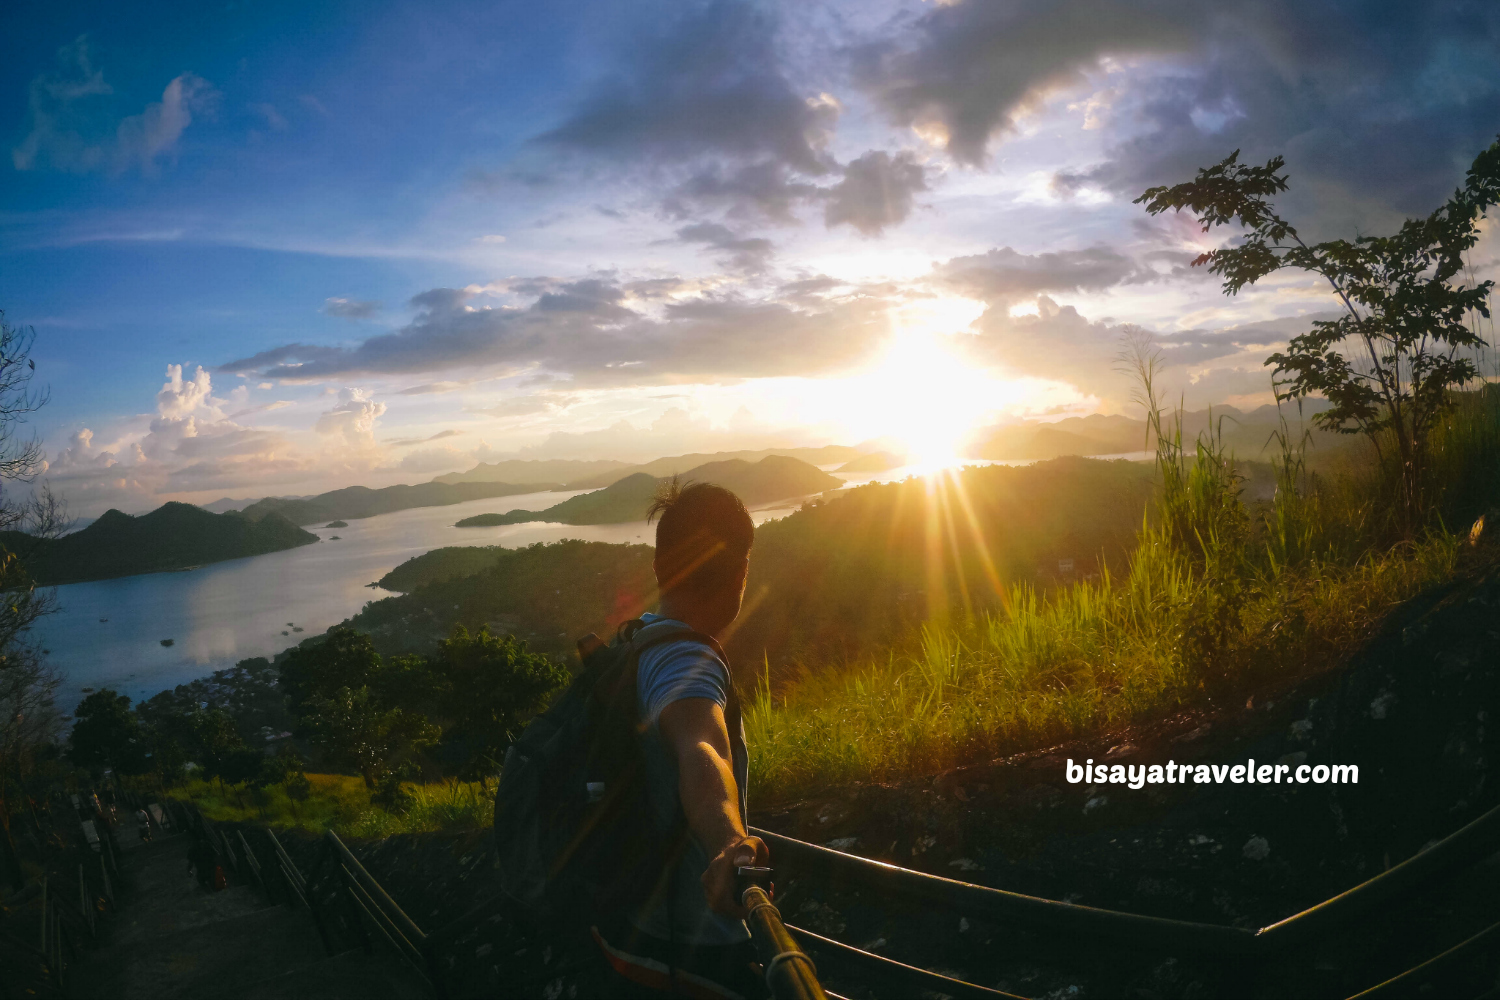 Mount Tapyas: Soaking Up The Dramatic Sunset In Coron.